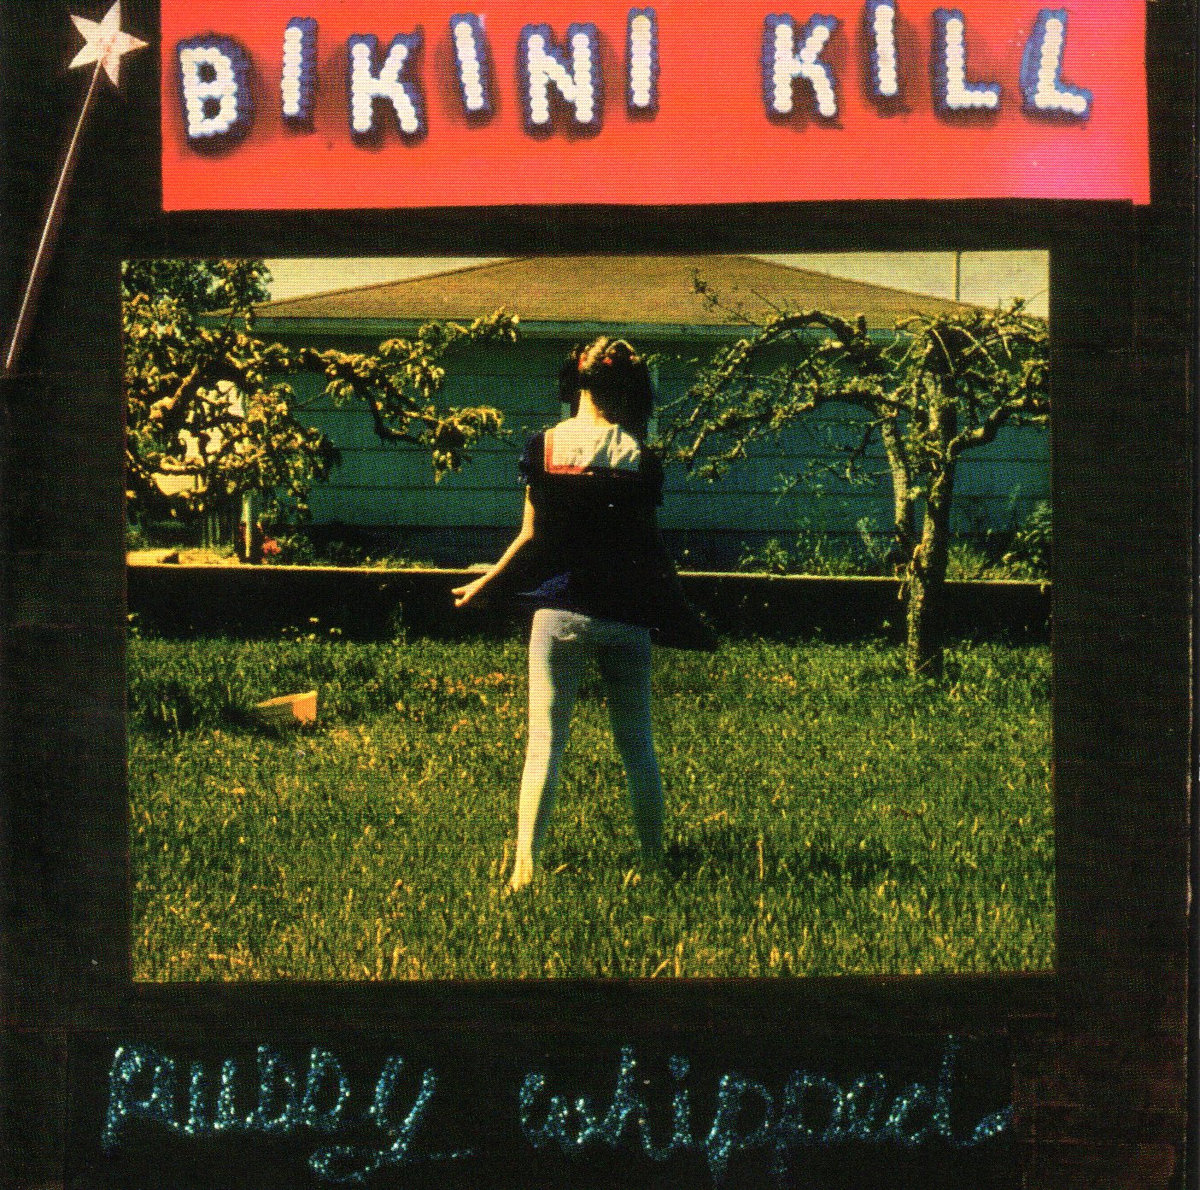 Bikini Kill Play Together For The First Time In Two Decades